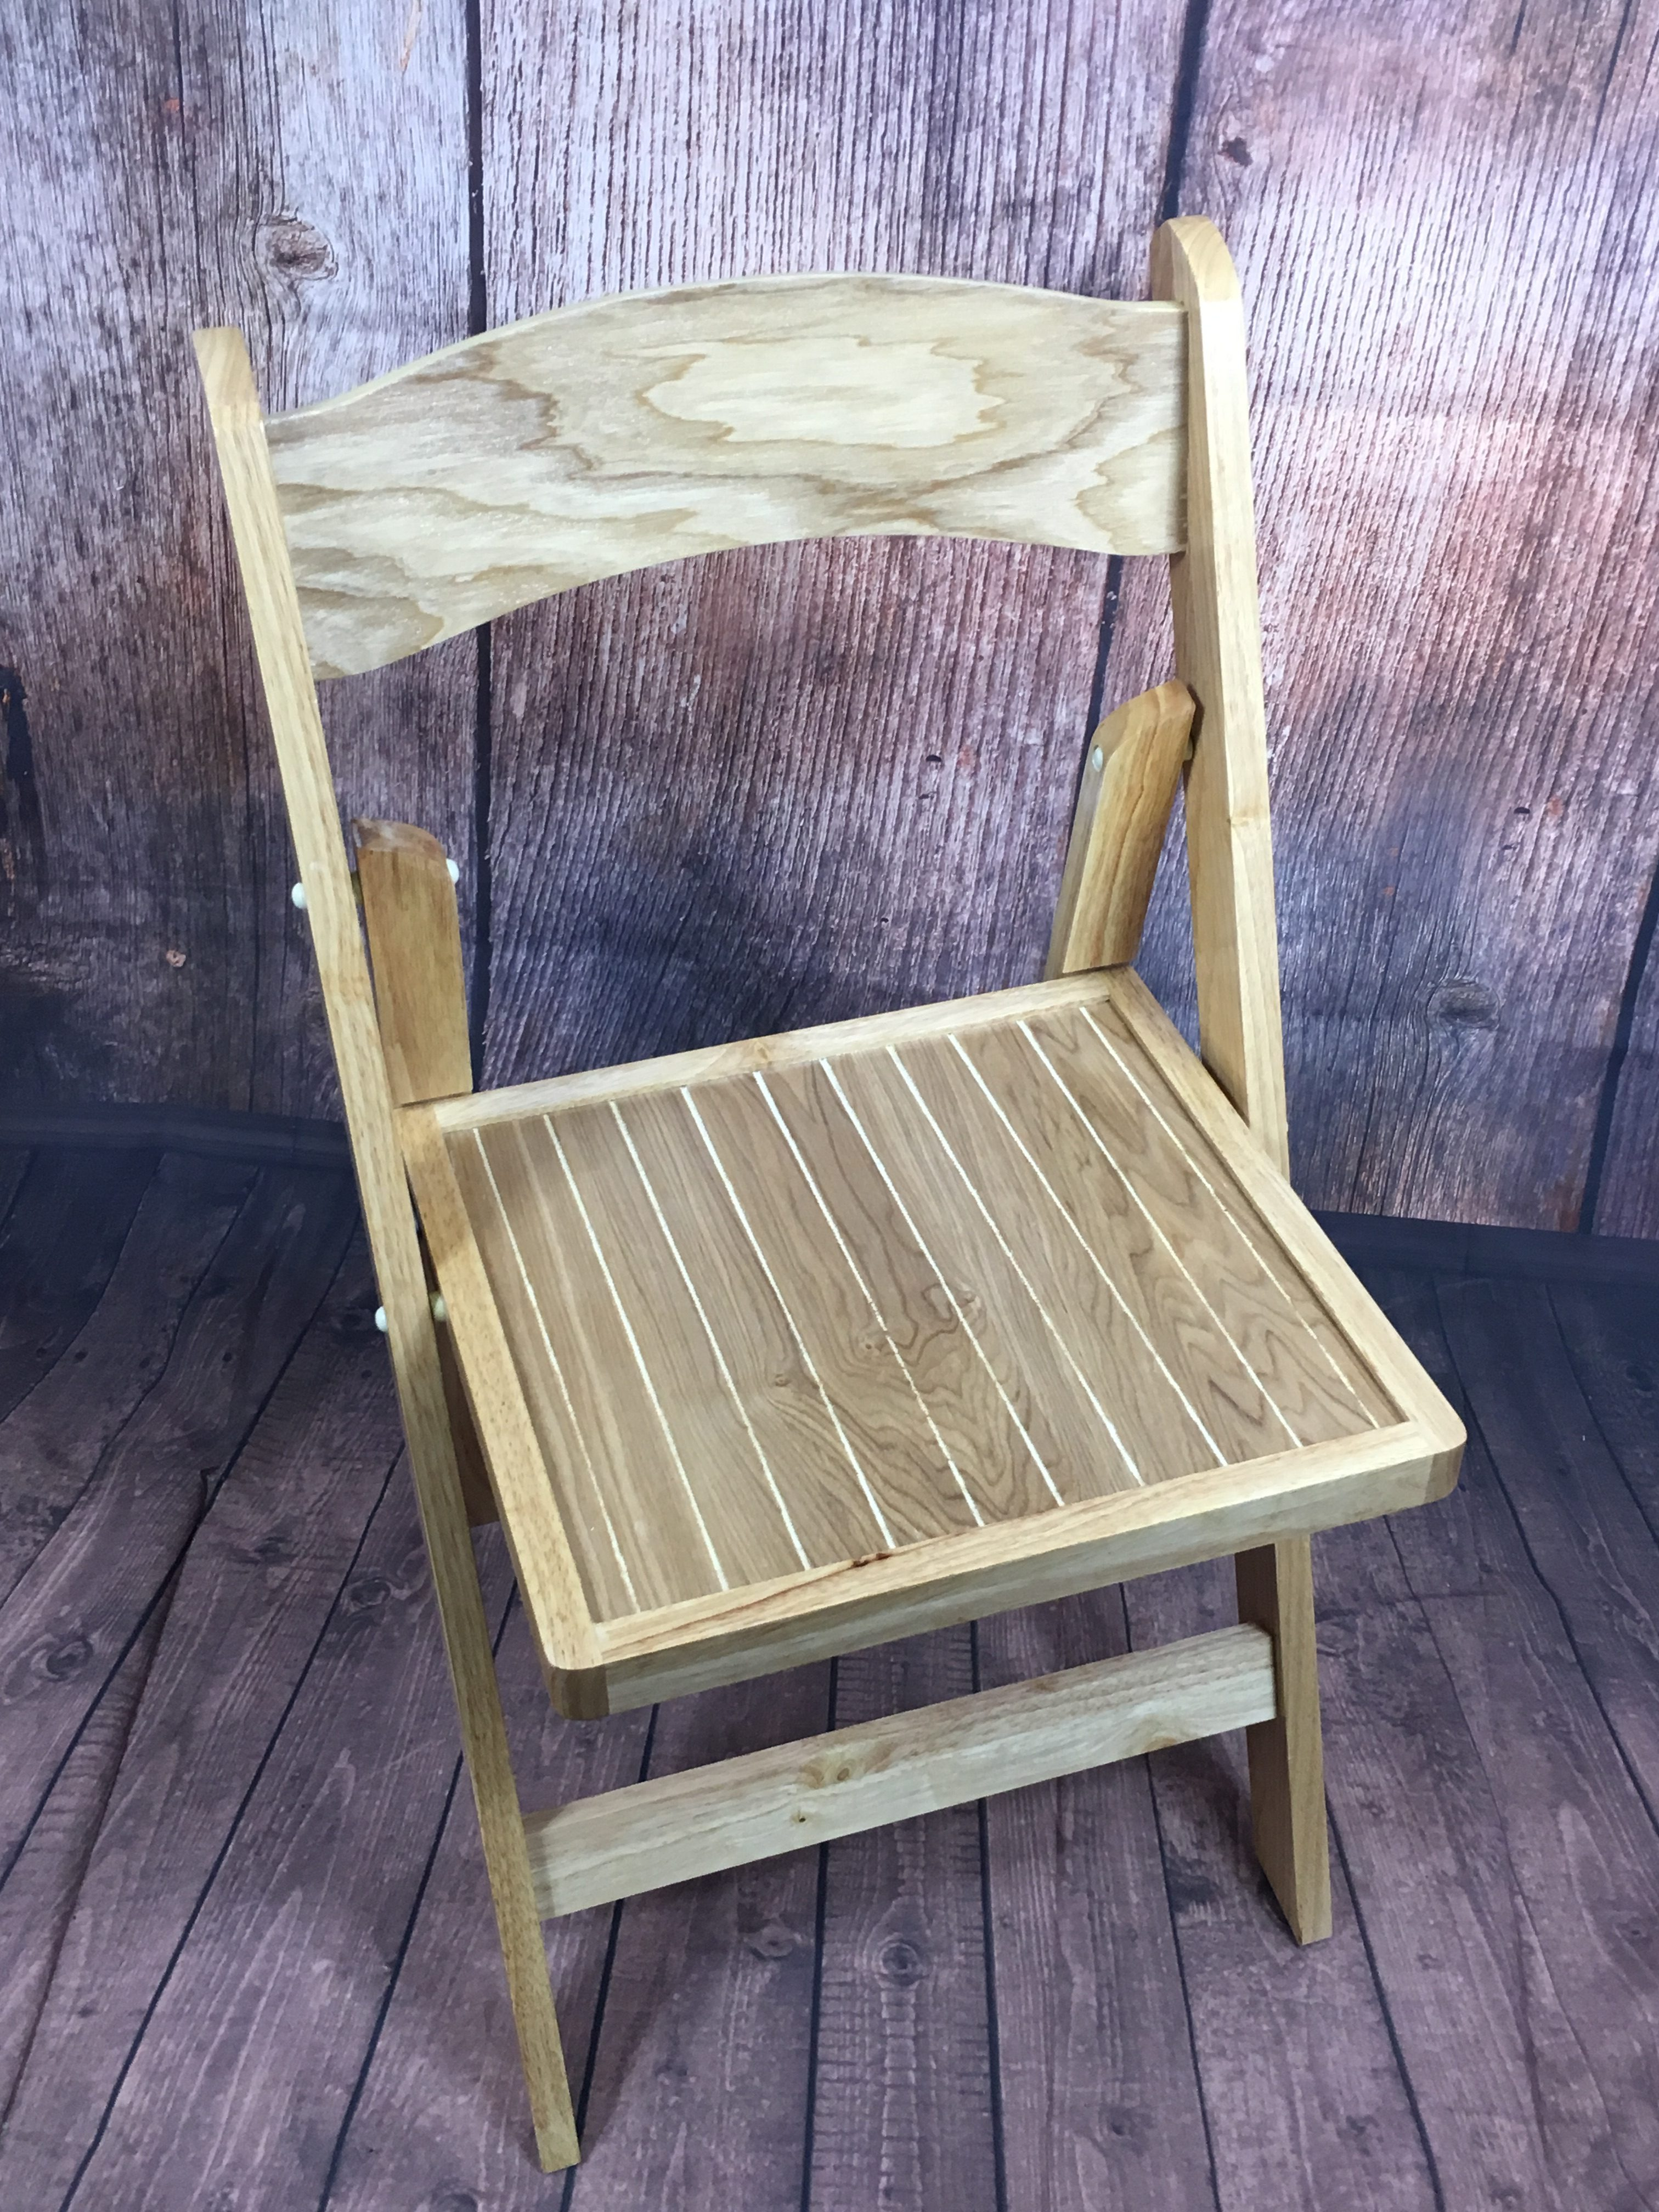 An image of a wooden, folding chair available for hire from Big Top Marquees.